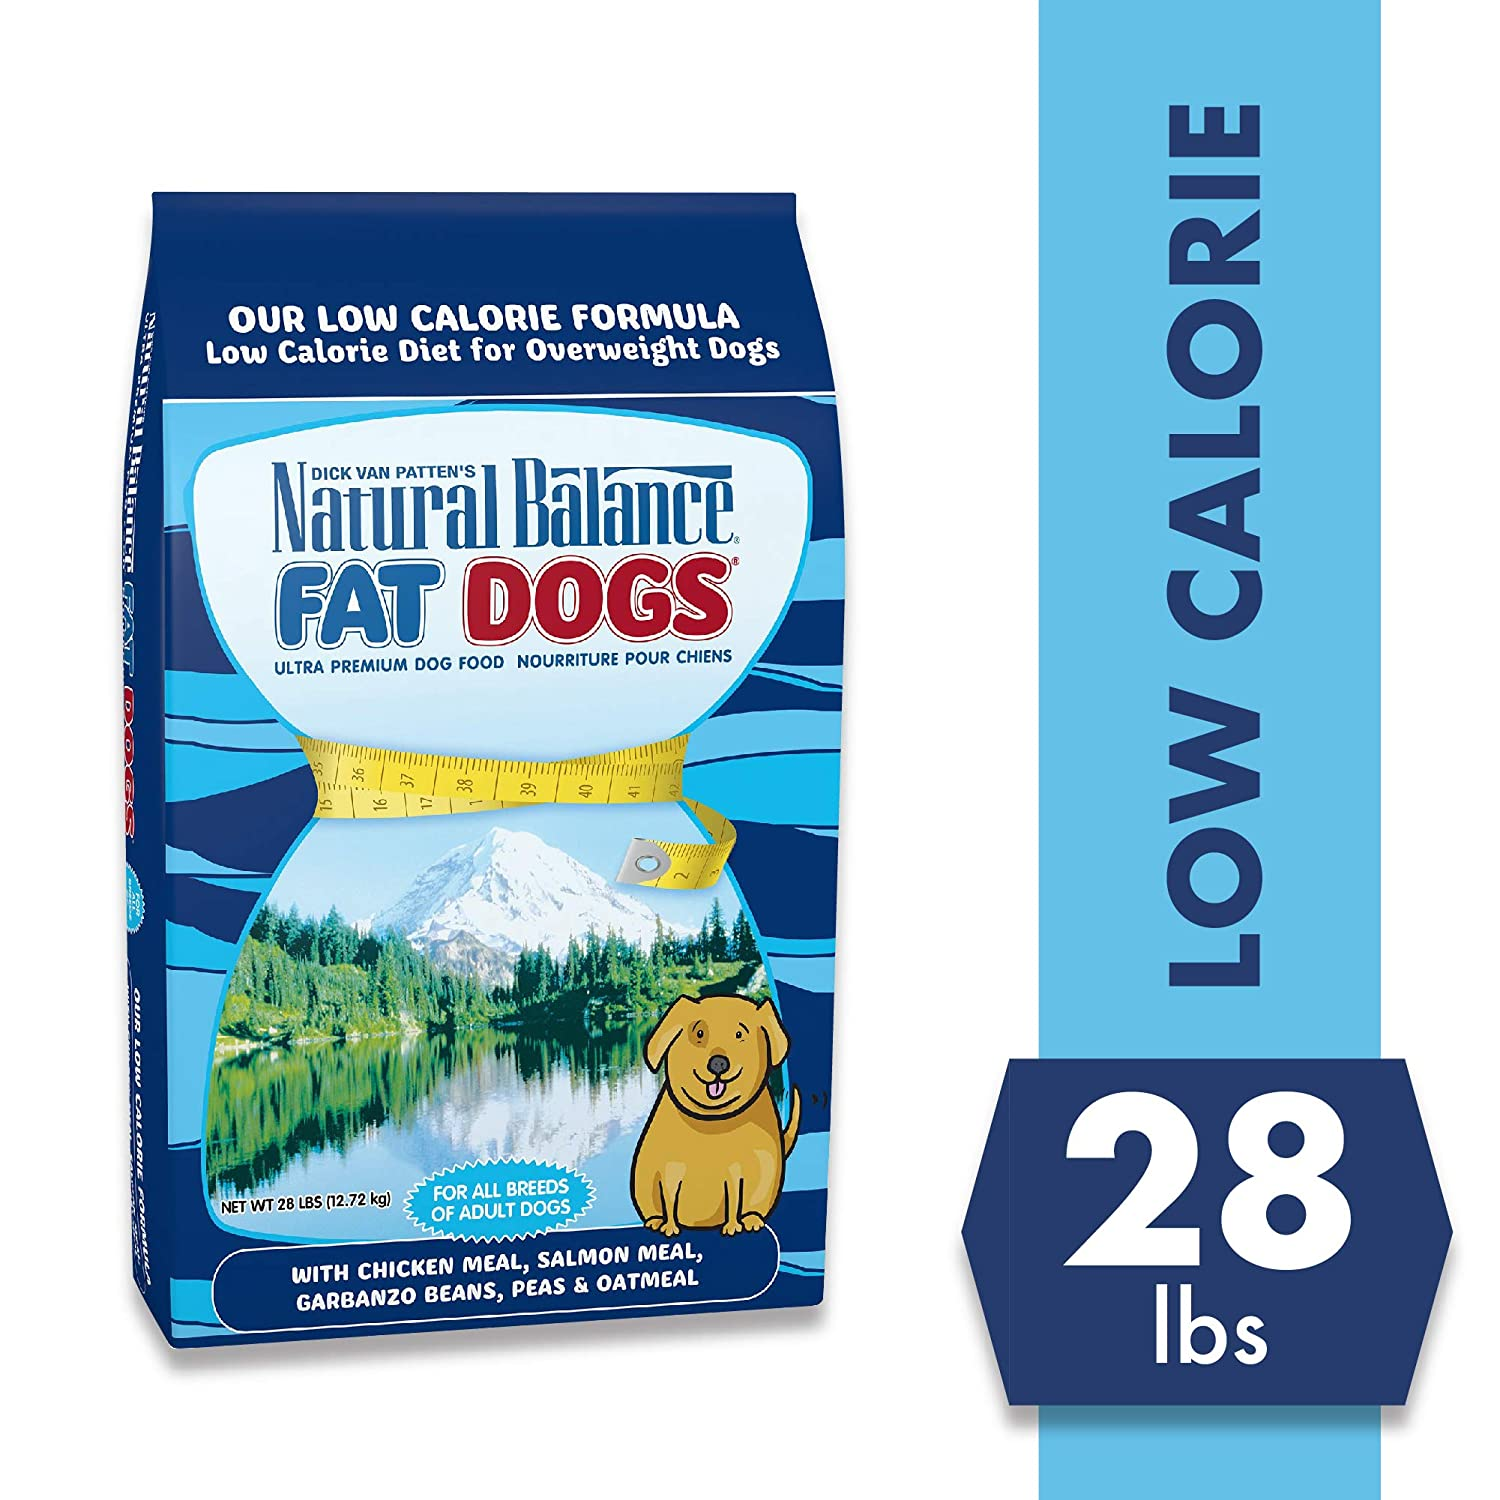 7. Natural Balance Fat Dogs Chicken & Salmon Formula Low Calorie Dry Dog Food